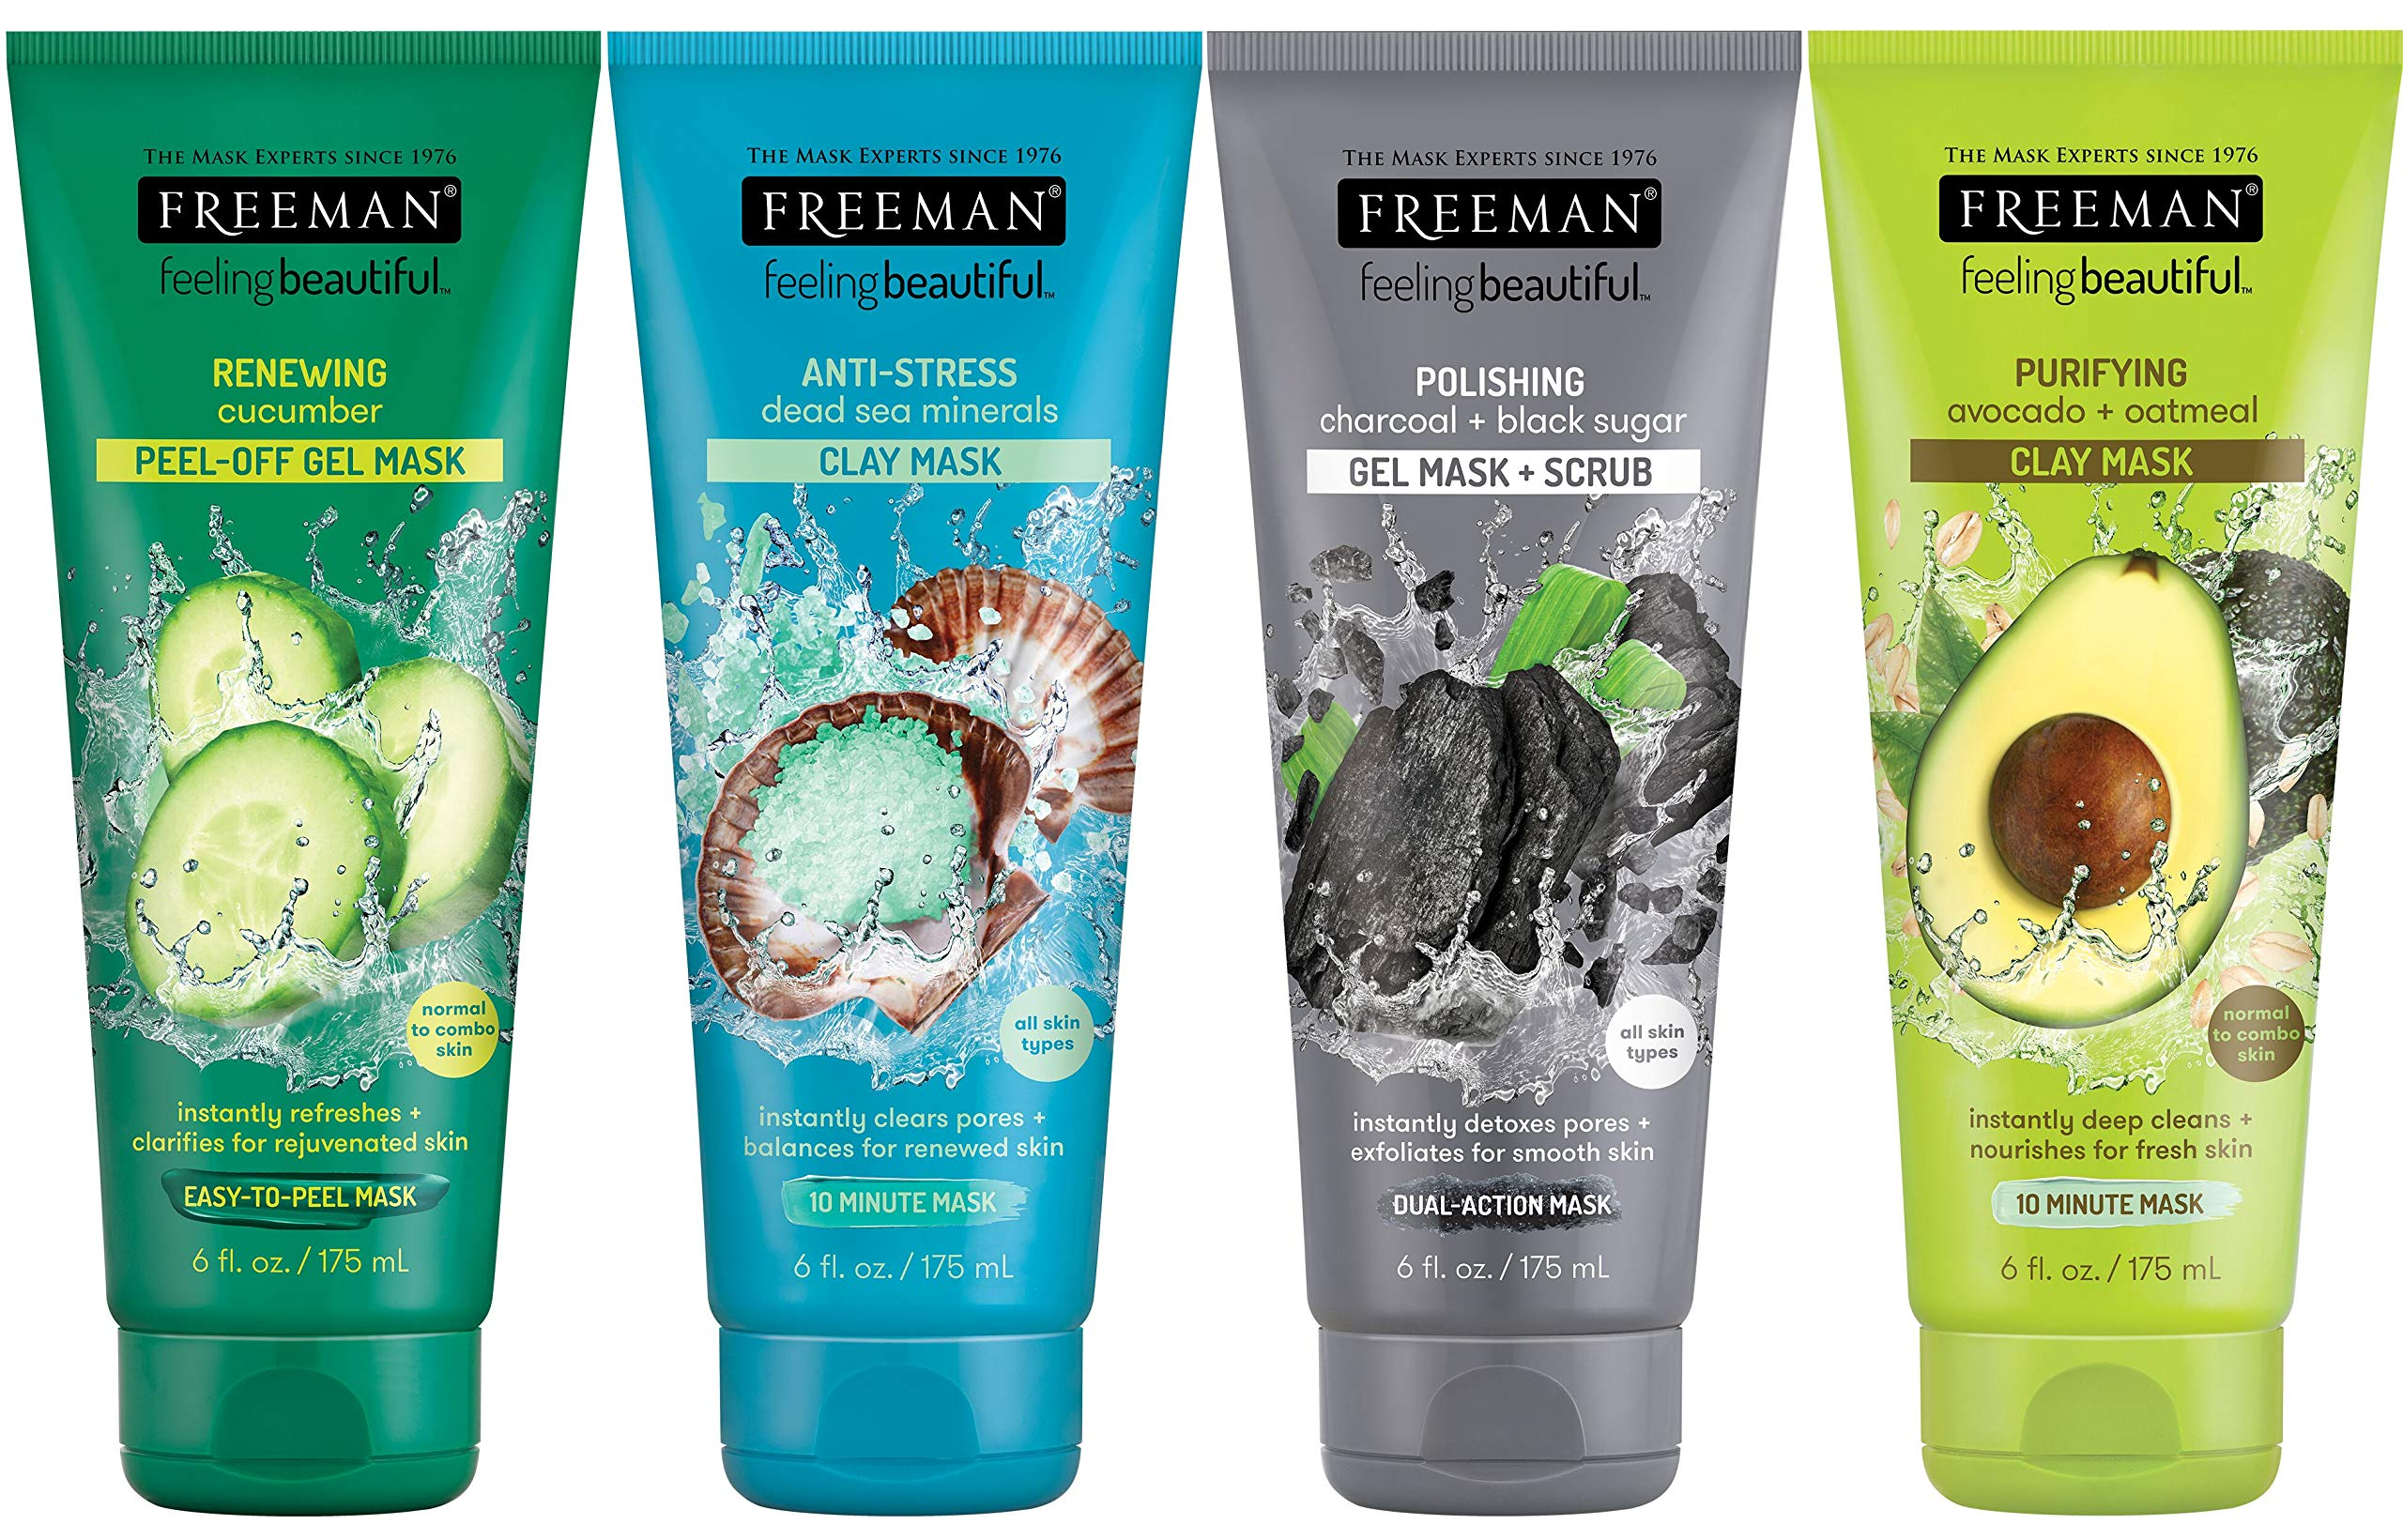 Freeman Facial Mask Variety Pack: Oil Absorbing Clay, Renewing and Moisturizing Peel Off, Polishing Charcoal Beauty Face Masks , 6 fl oz, 4 Pack